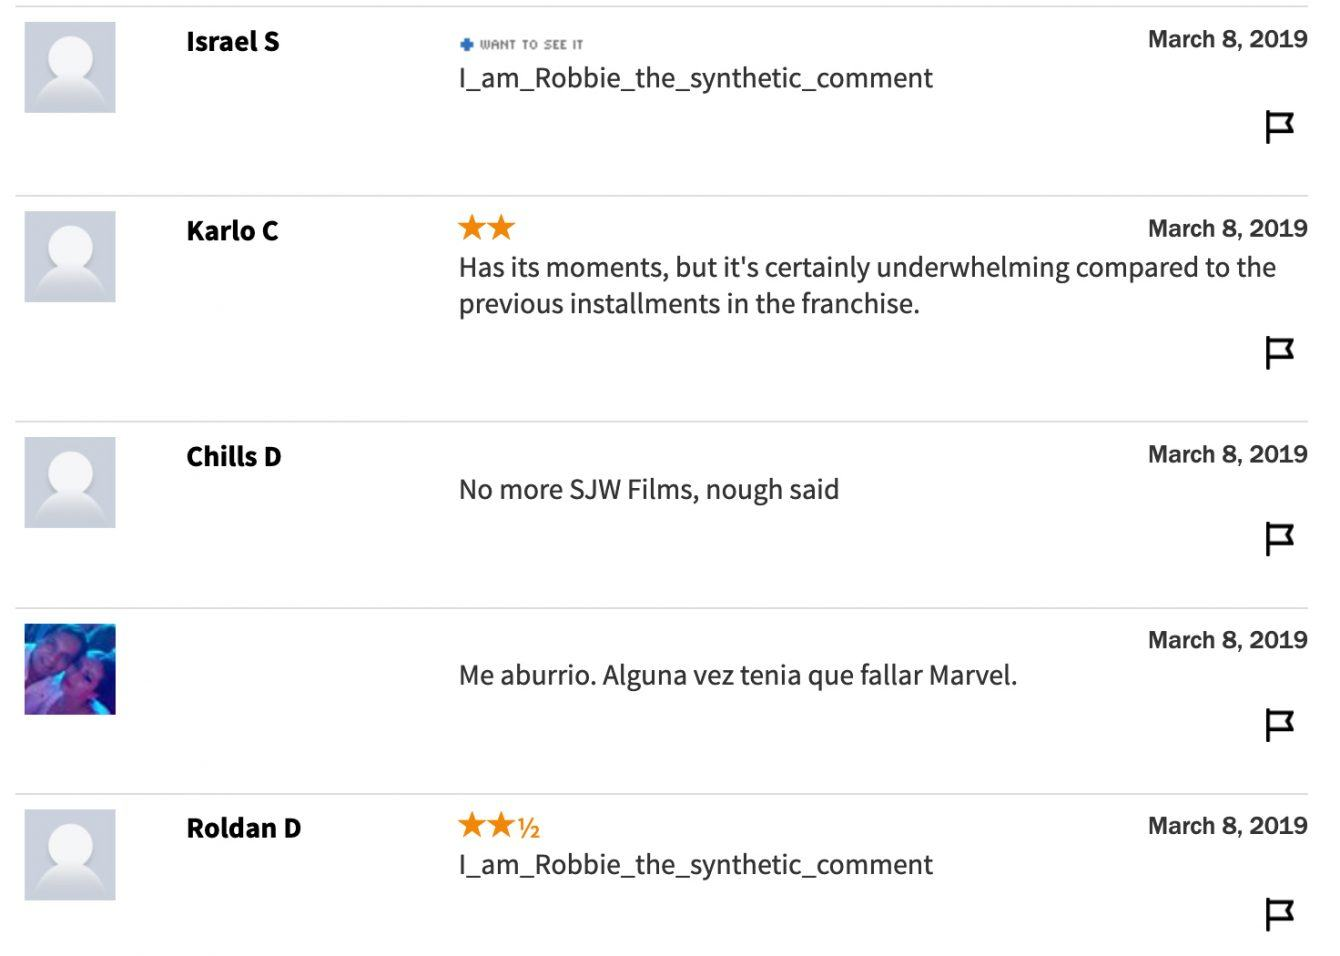 Rotten Tomatoes Captain Marvel bot comments